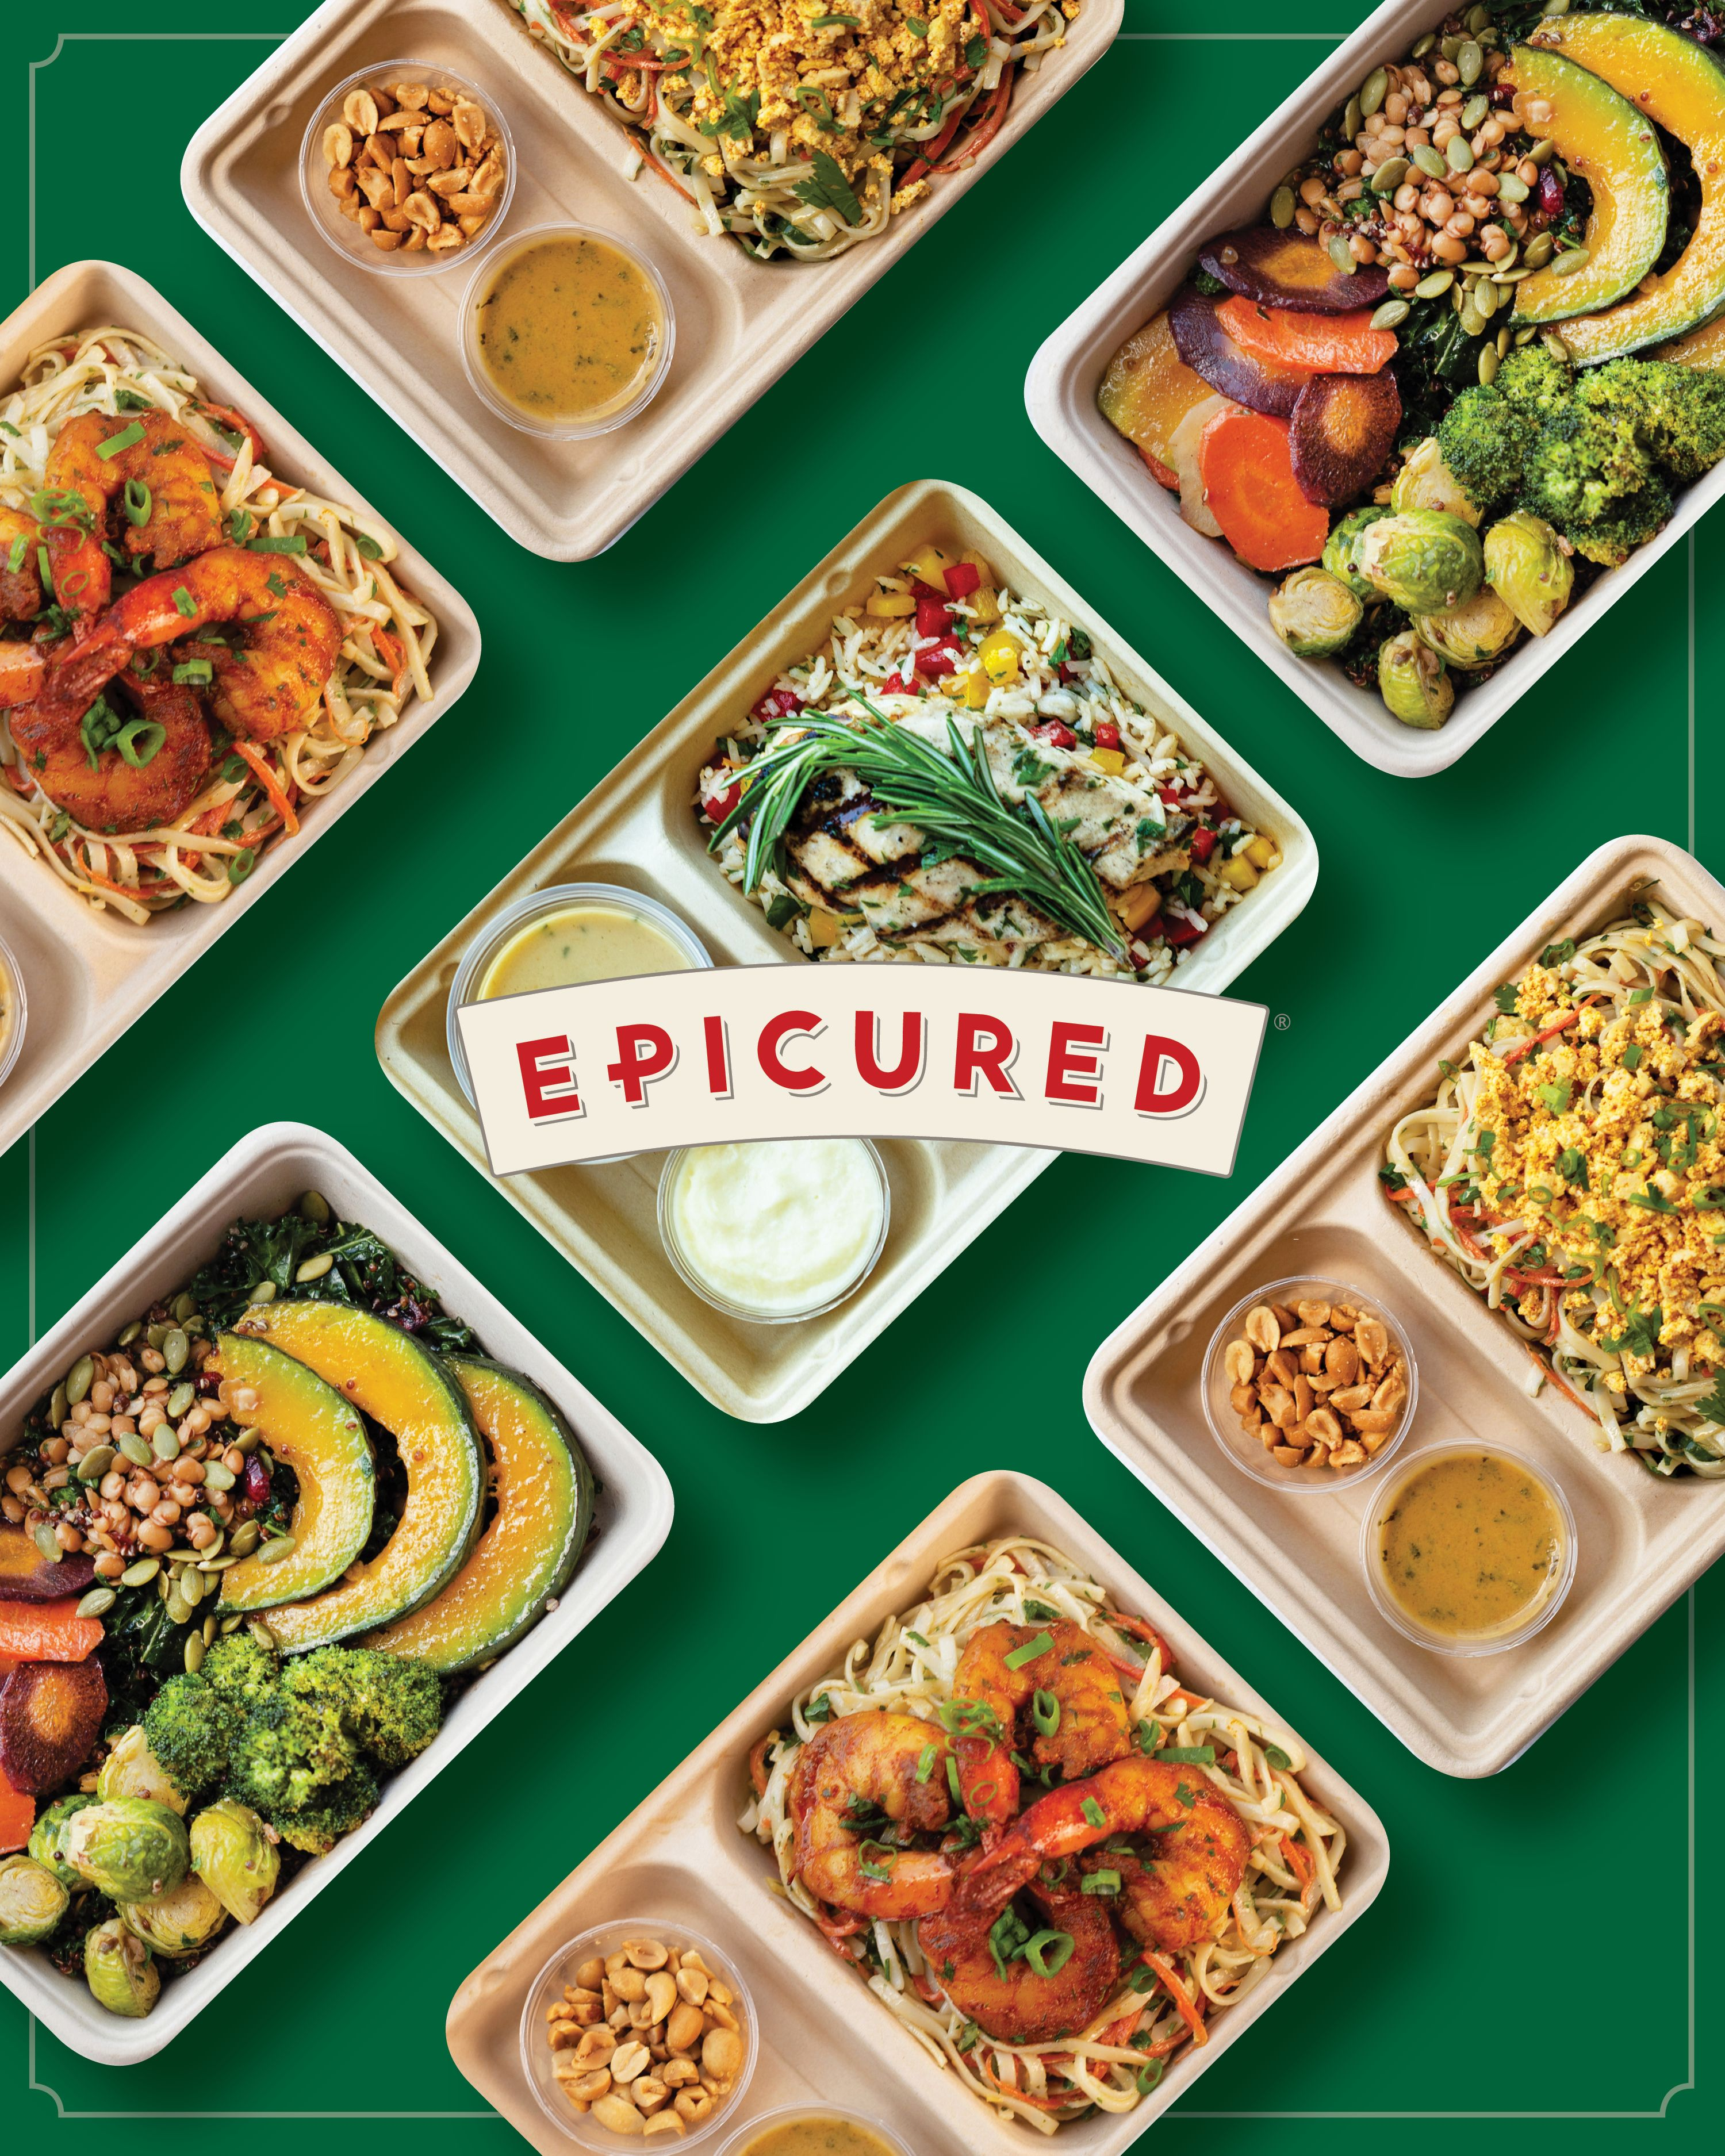 Epicured is a subscription meal delivery service that